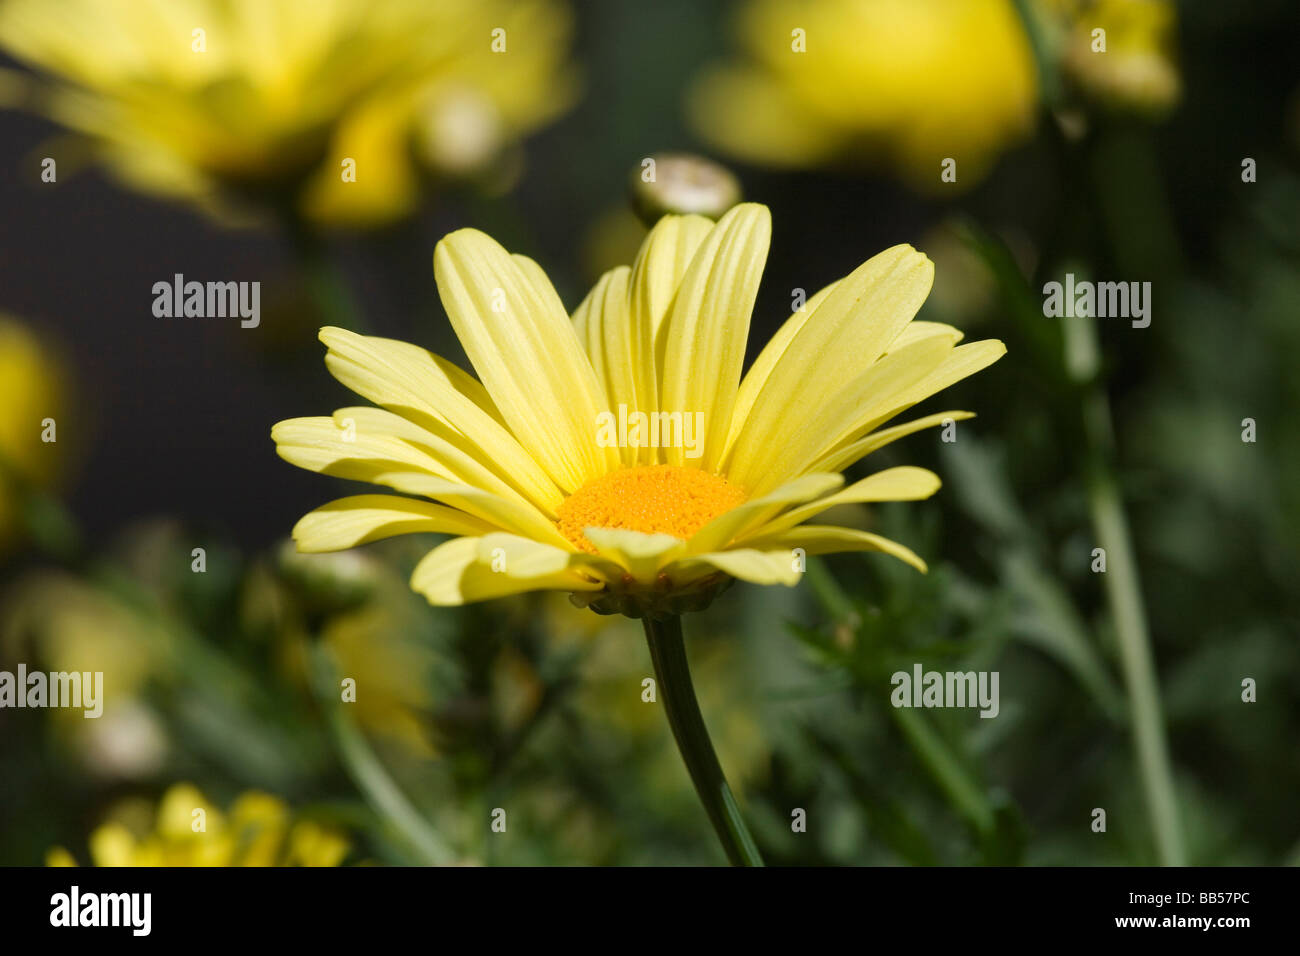 Single yellow flower with low depth of field - Stock Image